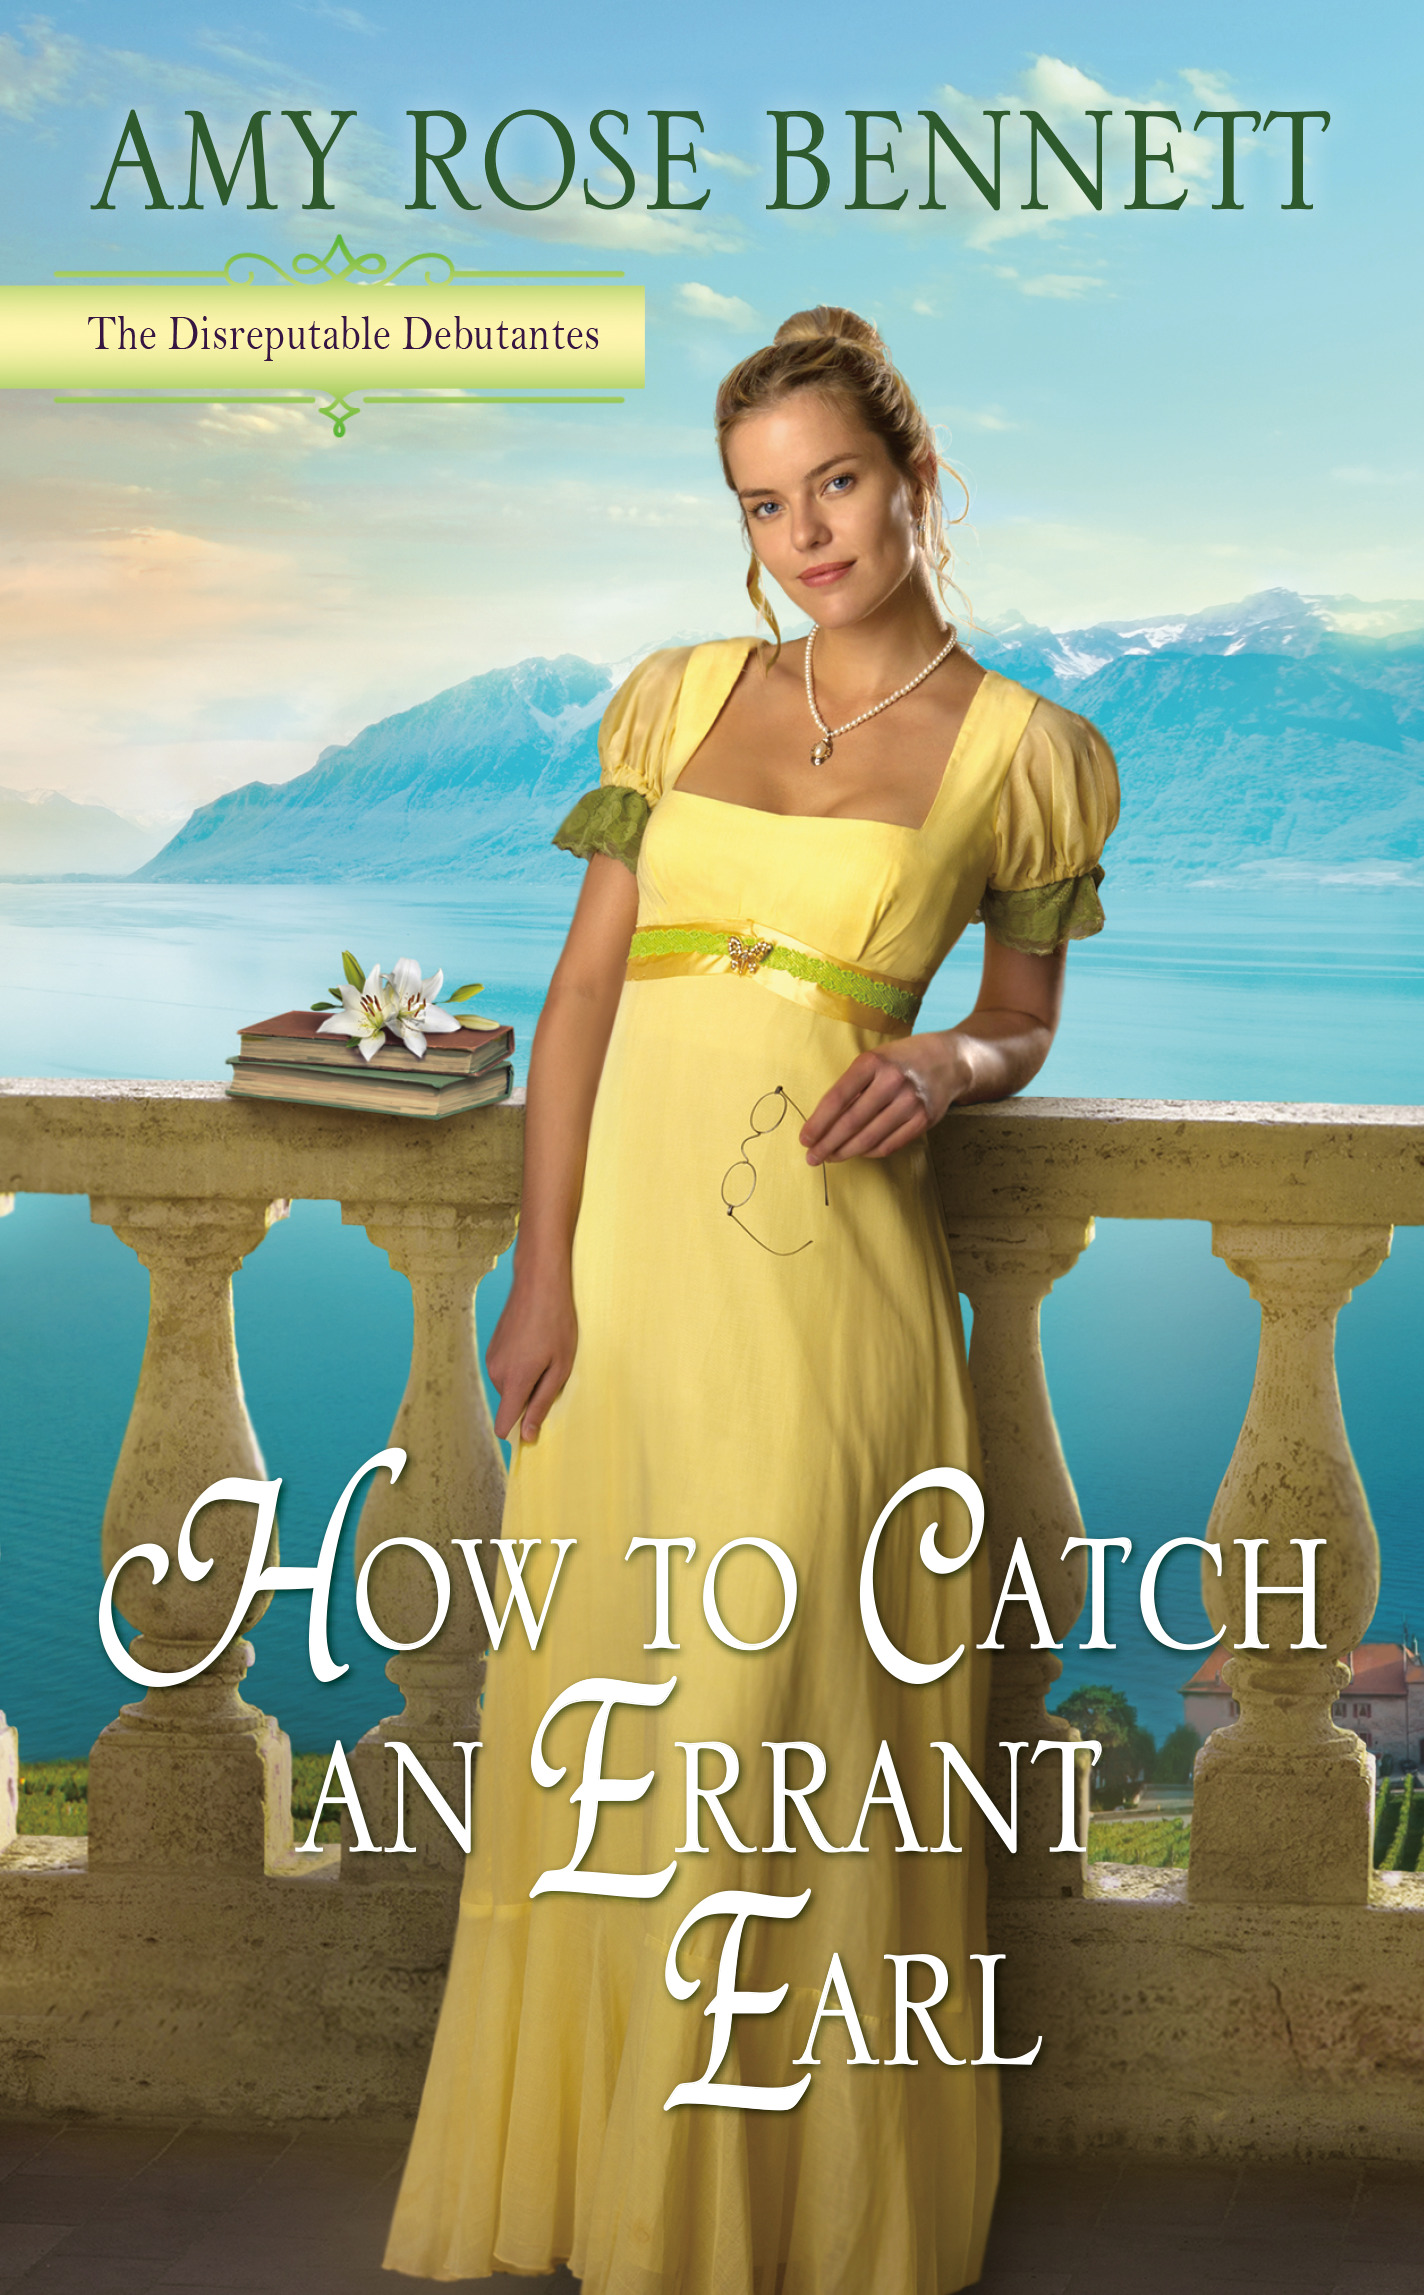 How to Catch an Errant Earl (The Disreputable Debutantes, #2)